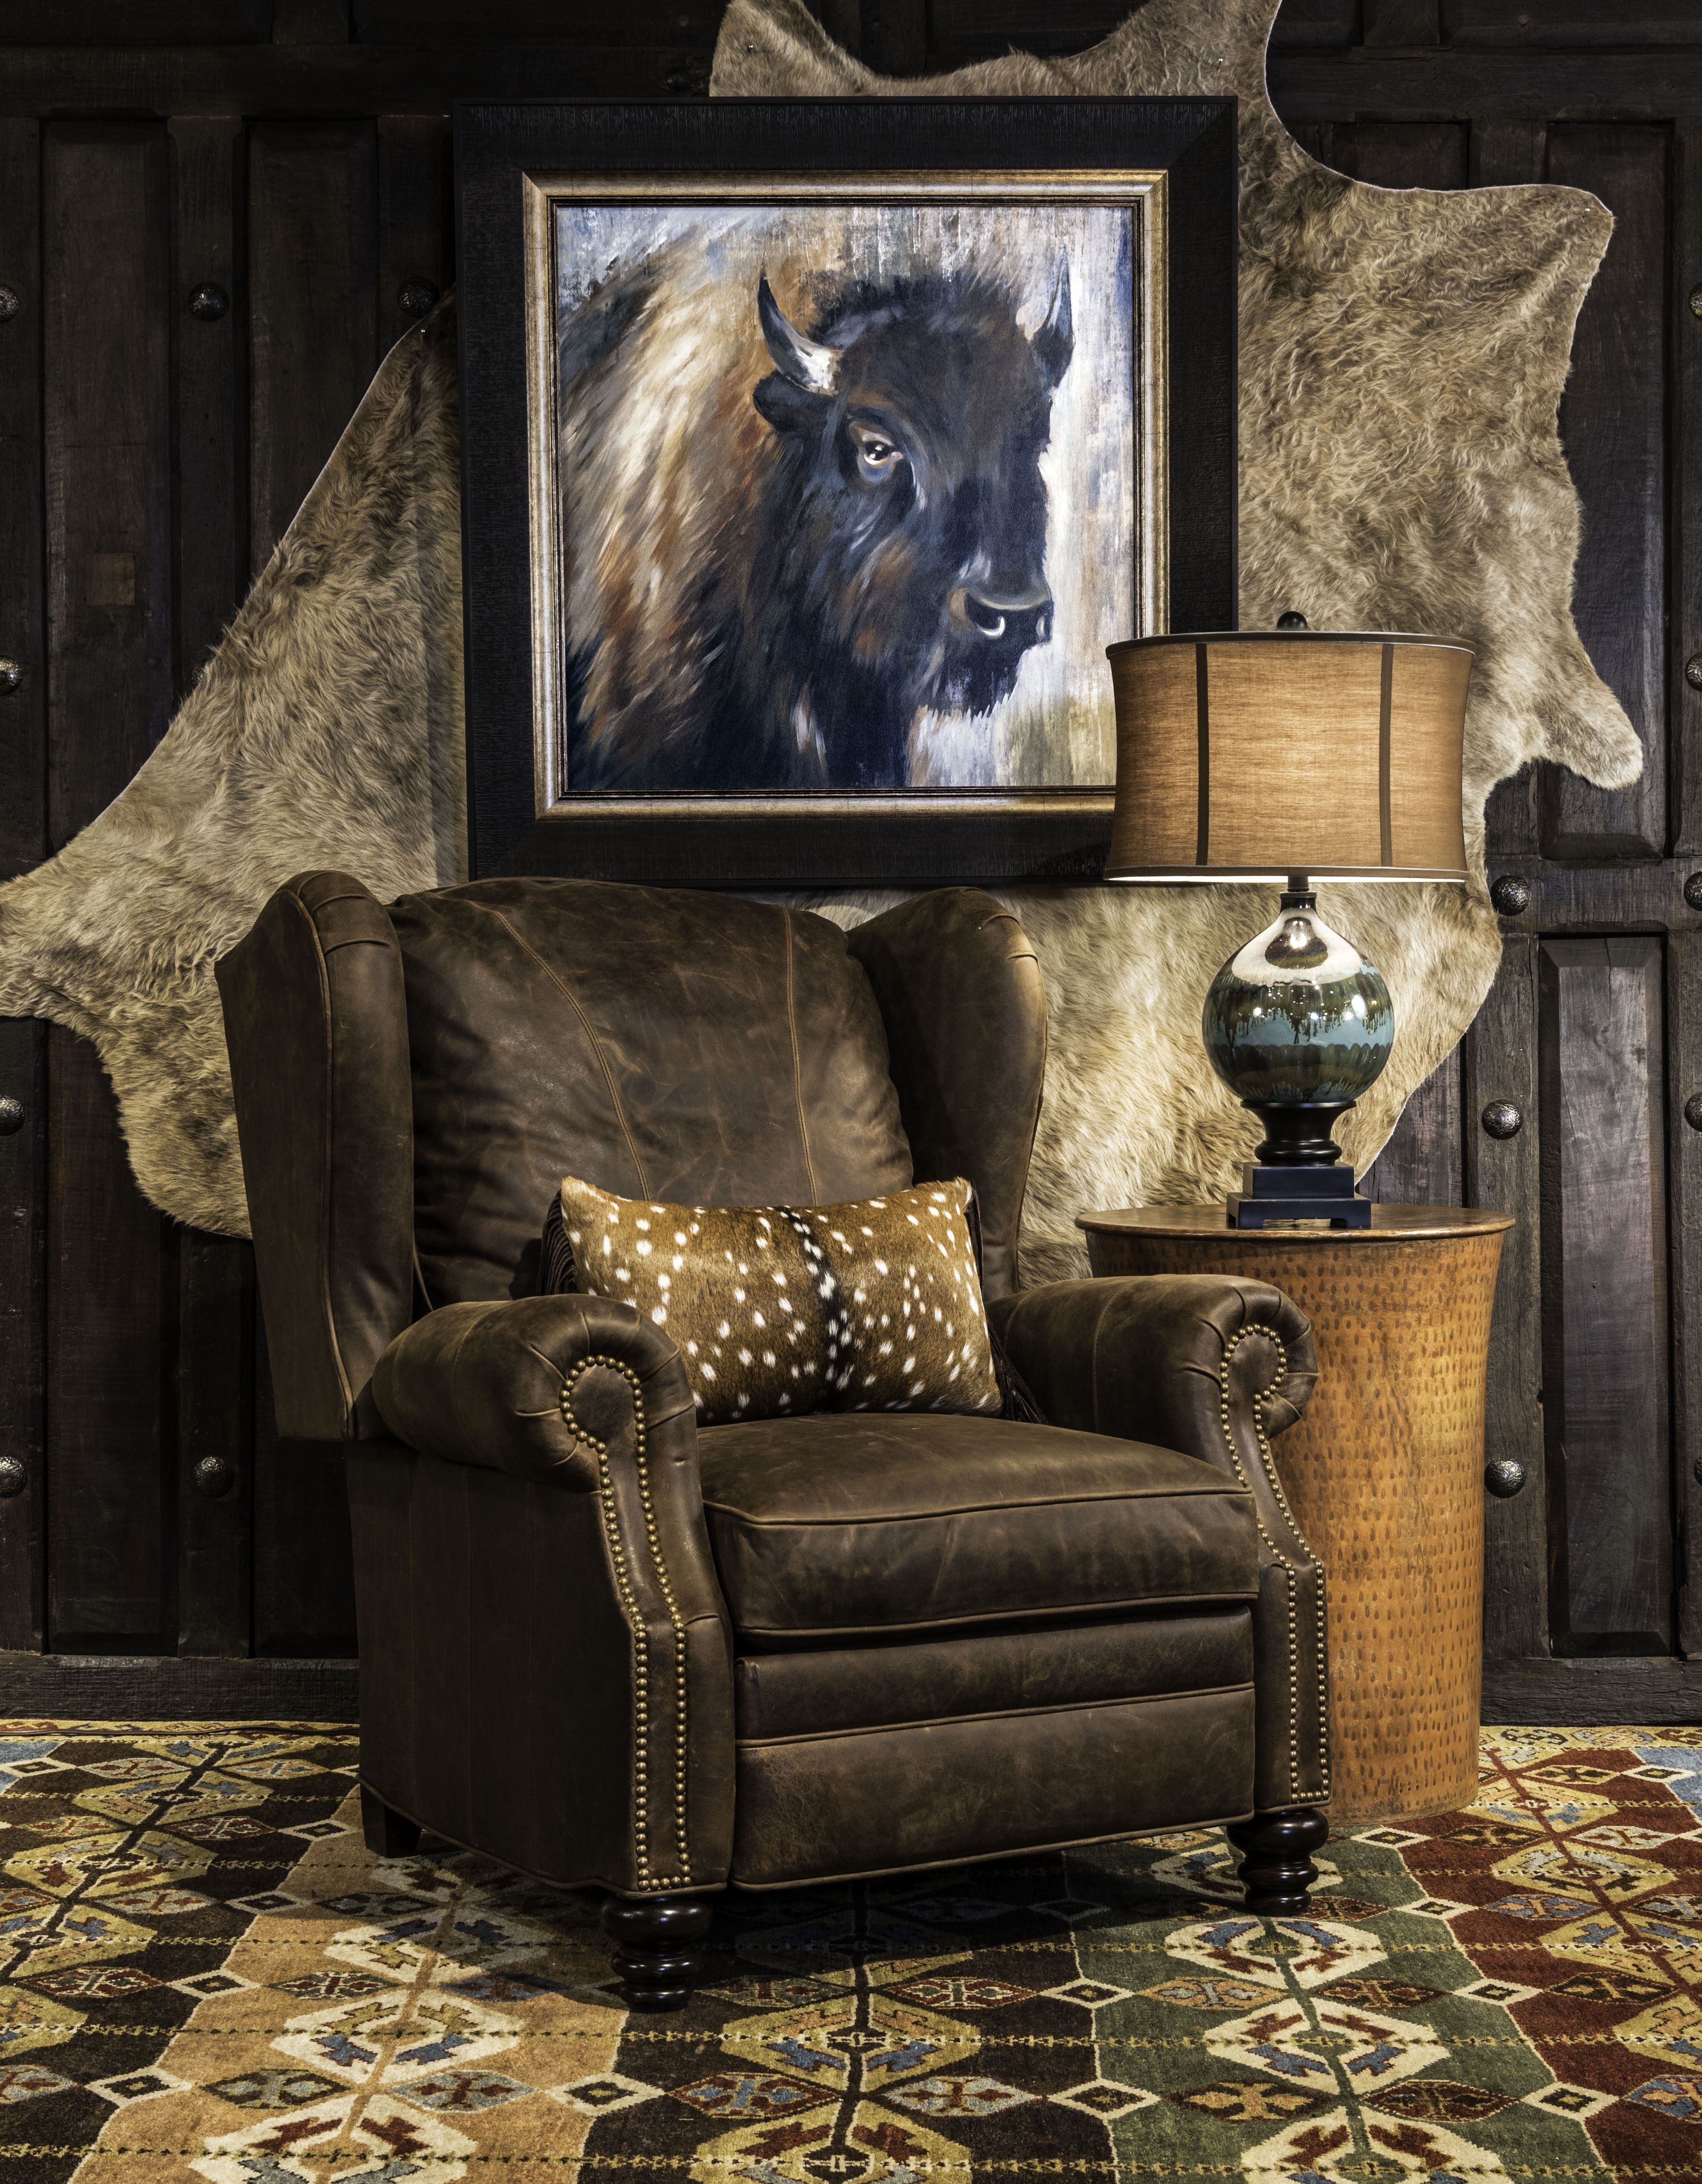 Cowboy Recliner By Adobe Interiors House Decor Rustic Western Home Decor Ranch House Decor